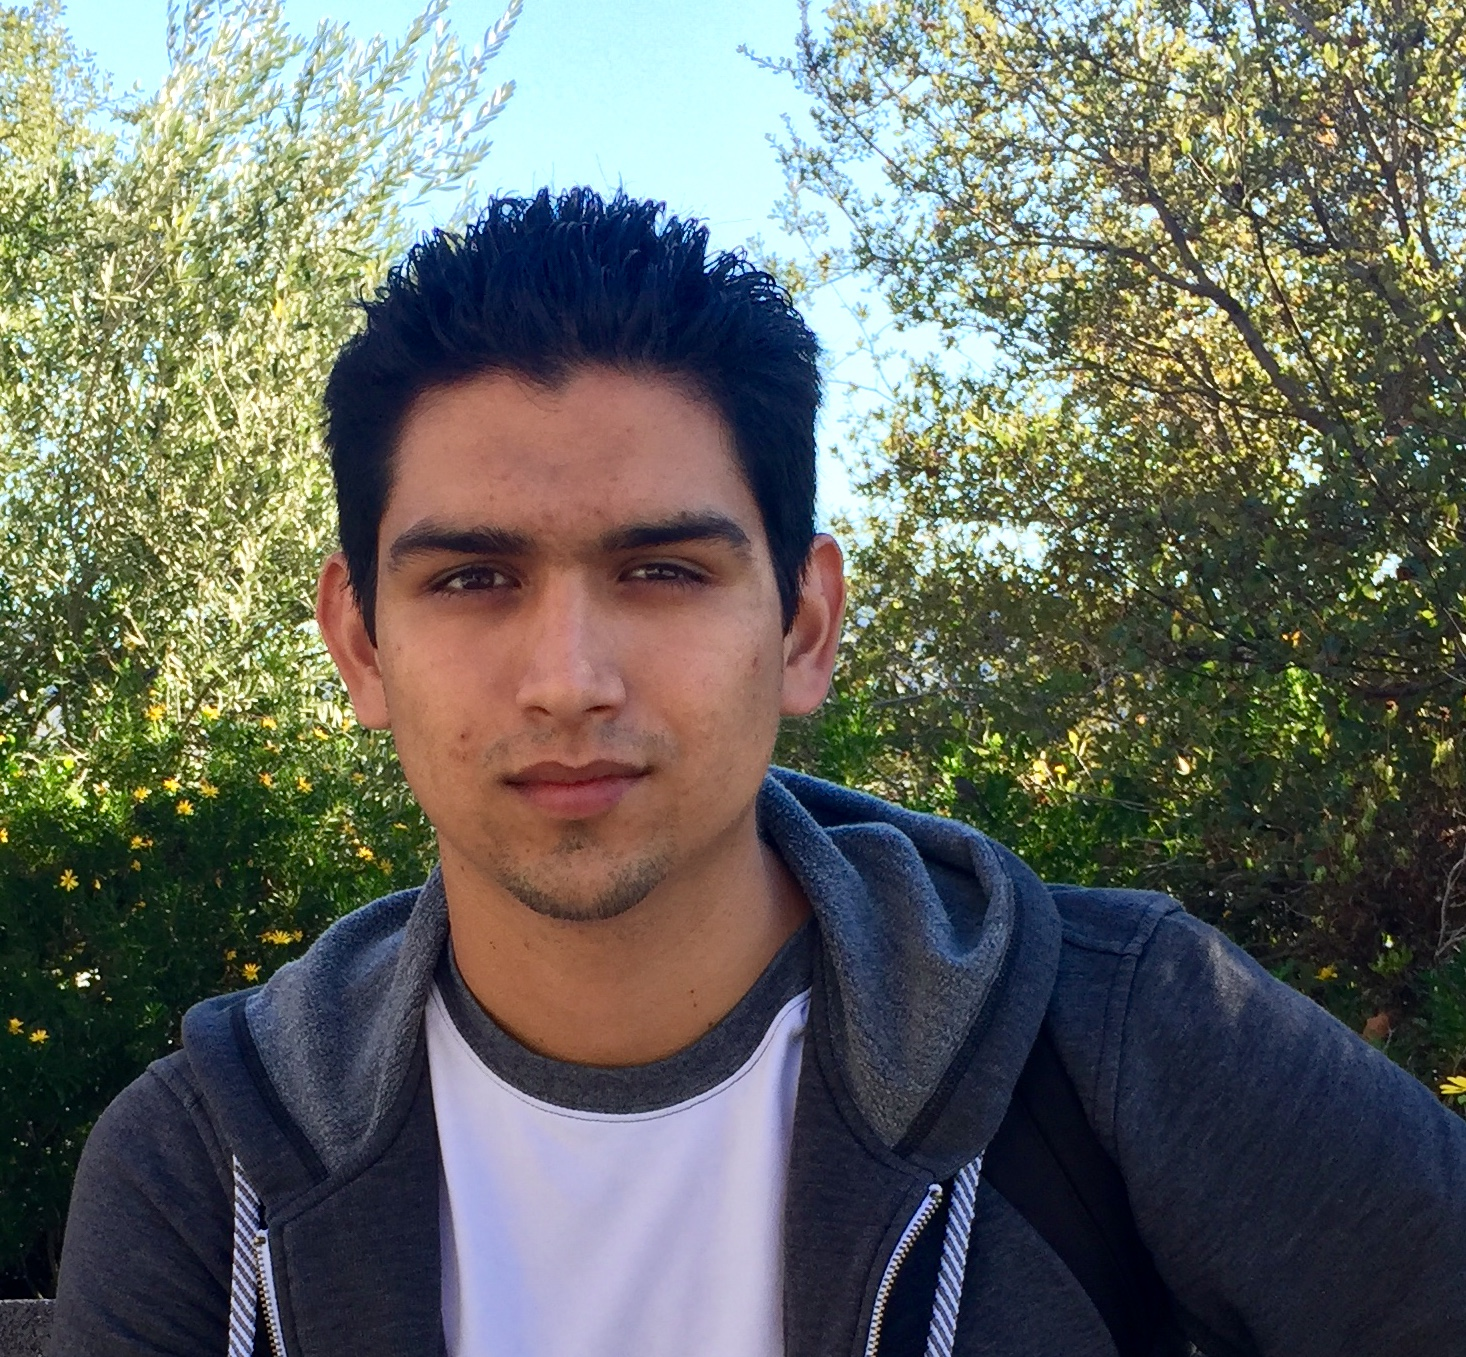 """Taking programming classes down at UCSD and hanging out with my family and friends."" EDUARDO REYES, COMPUTER SCIENCE MAJOR"